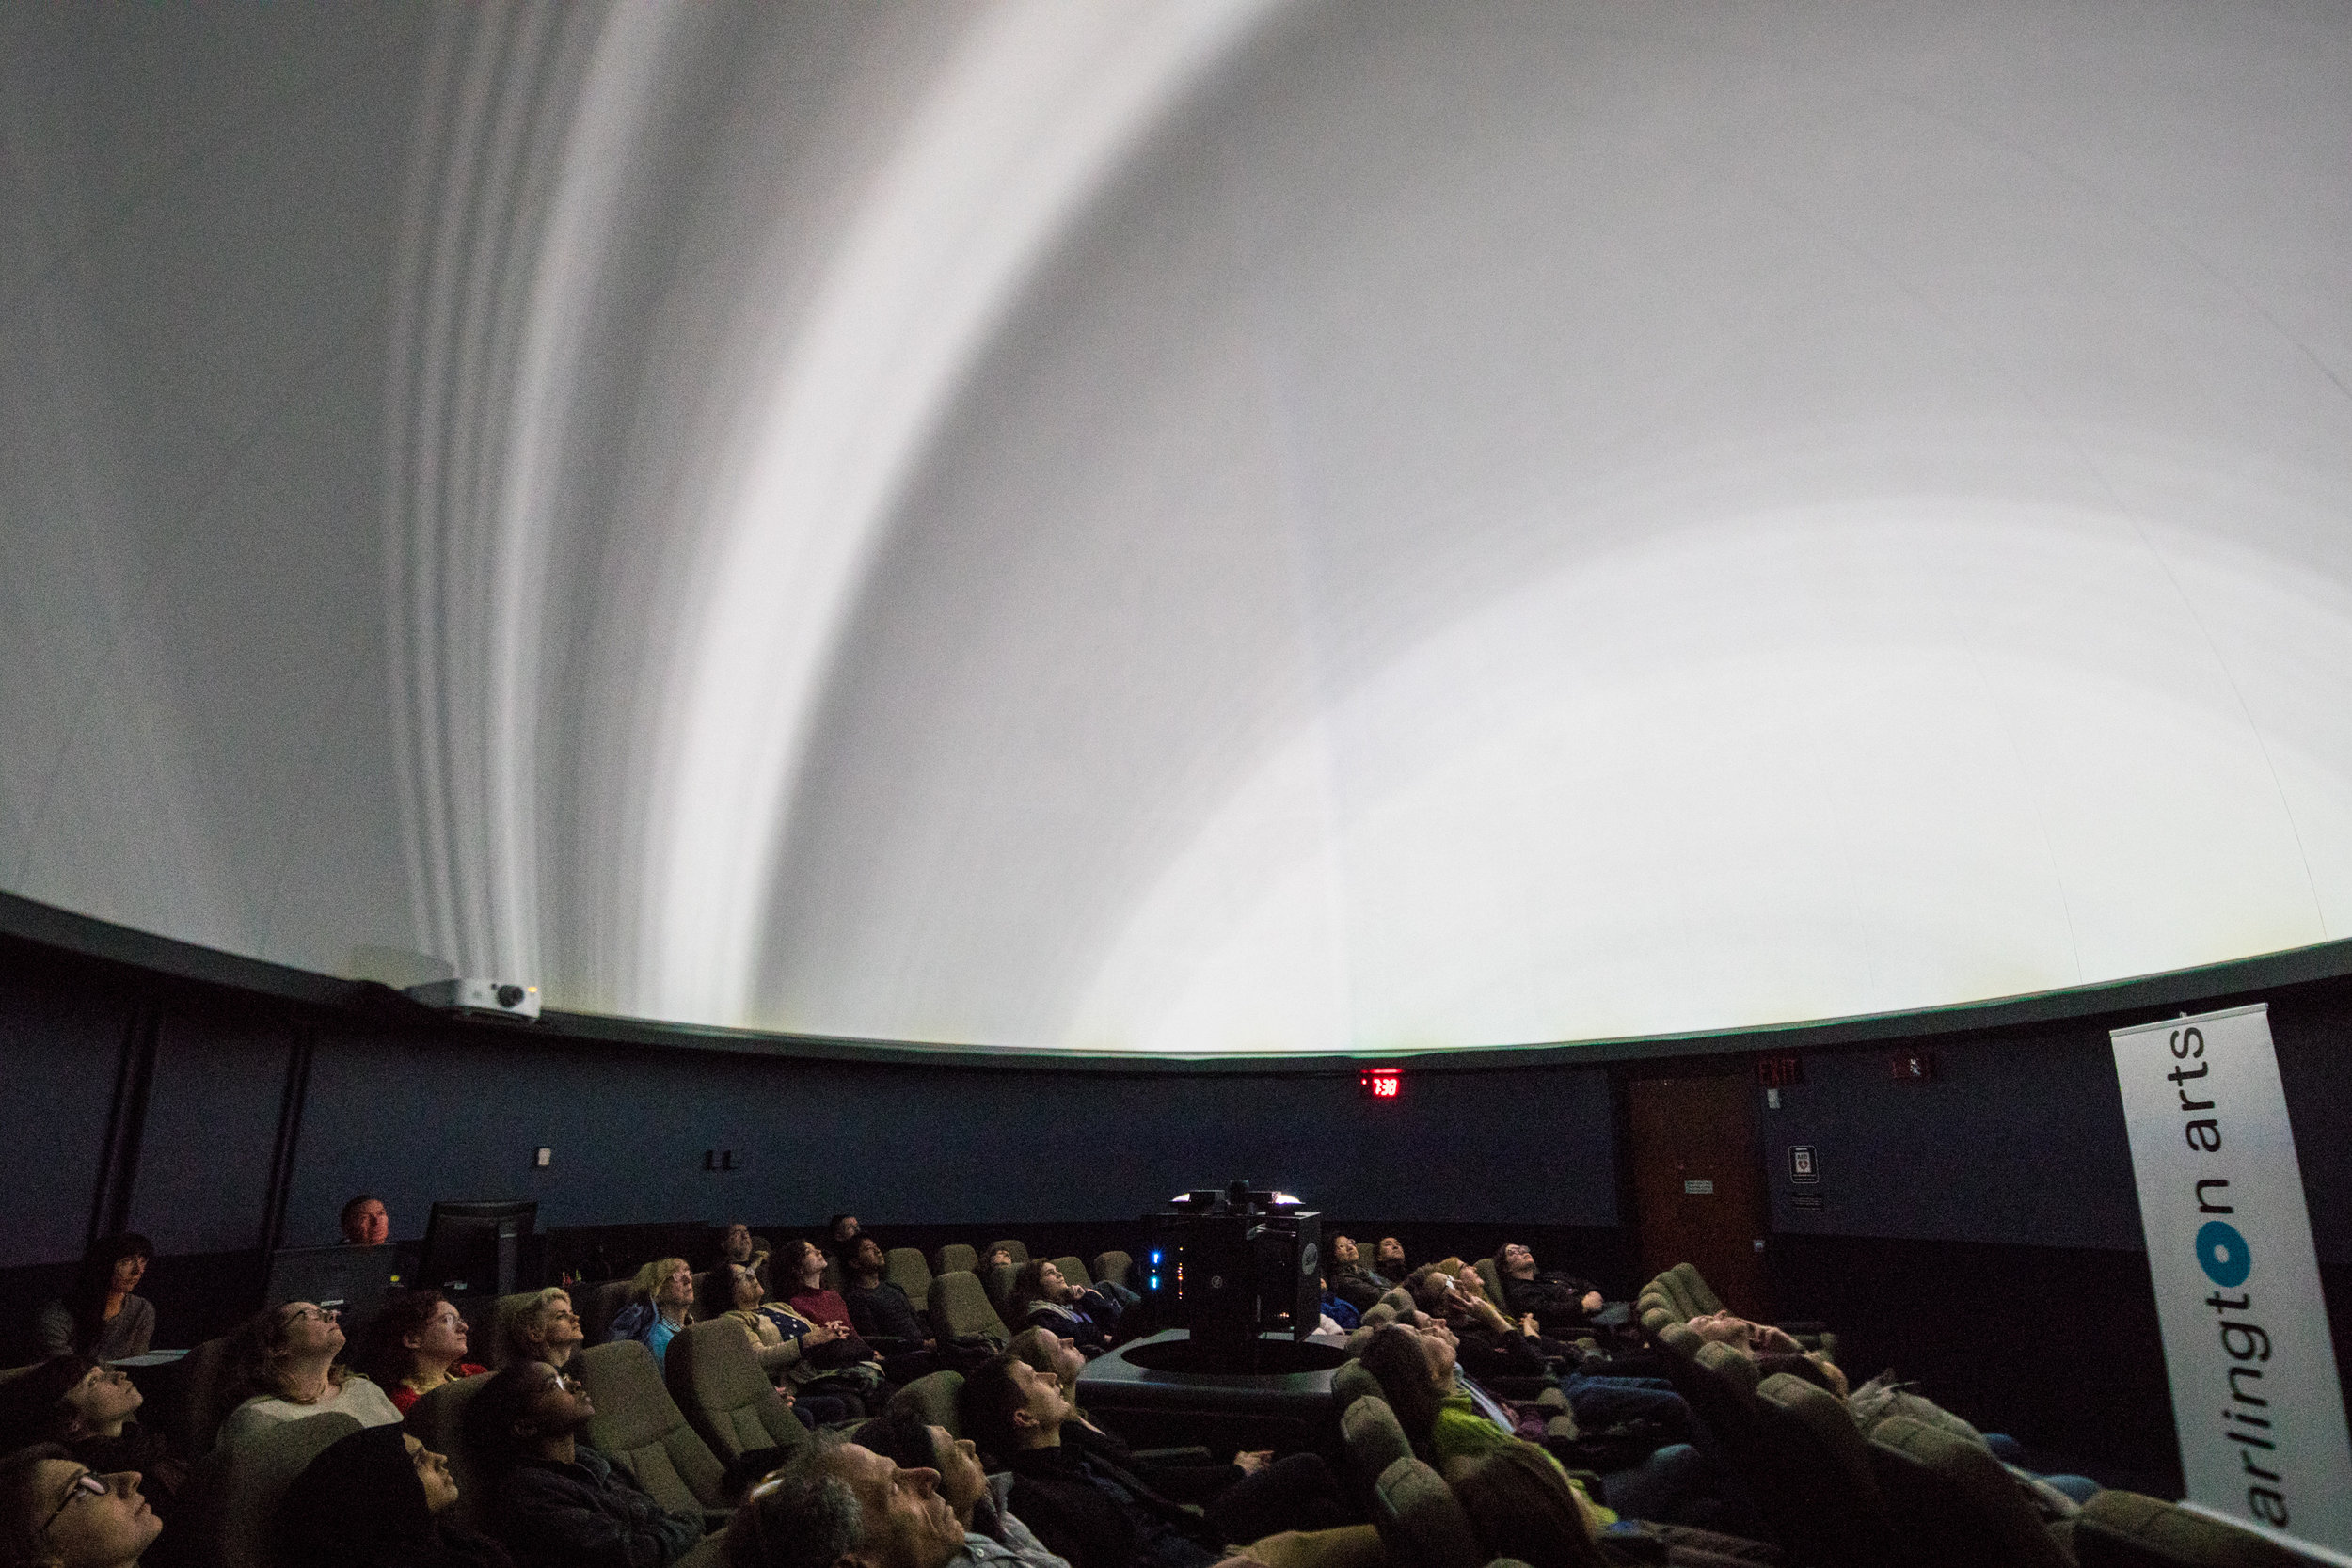 ym_aca_full_dome_projection_111717-6156.jpg